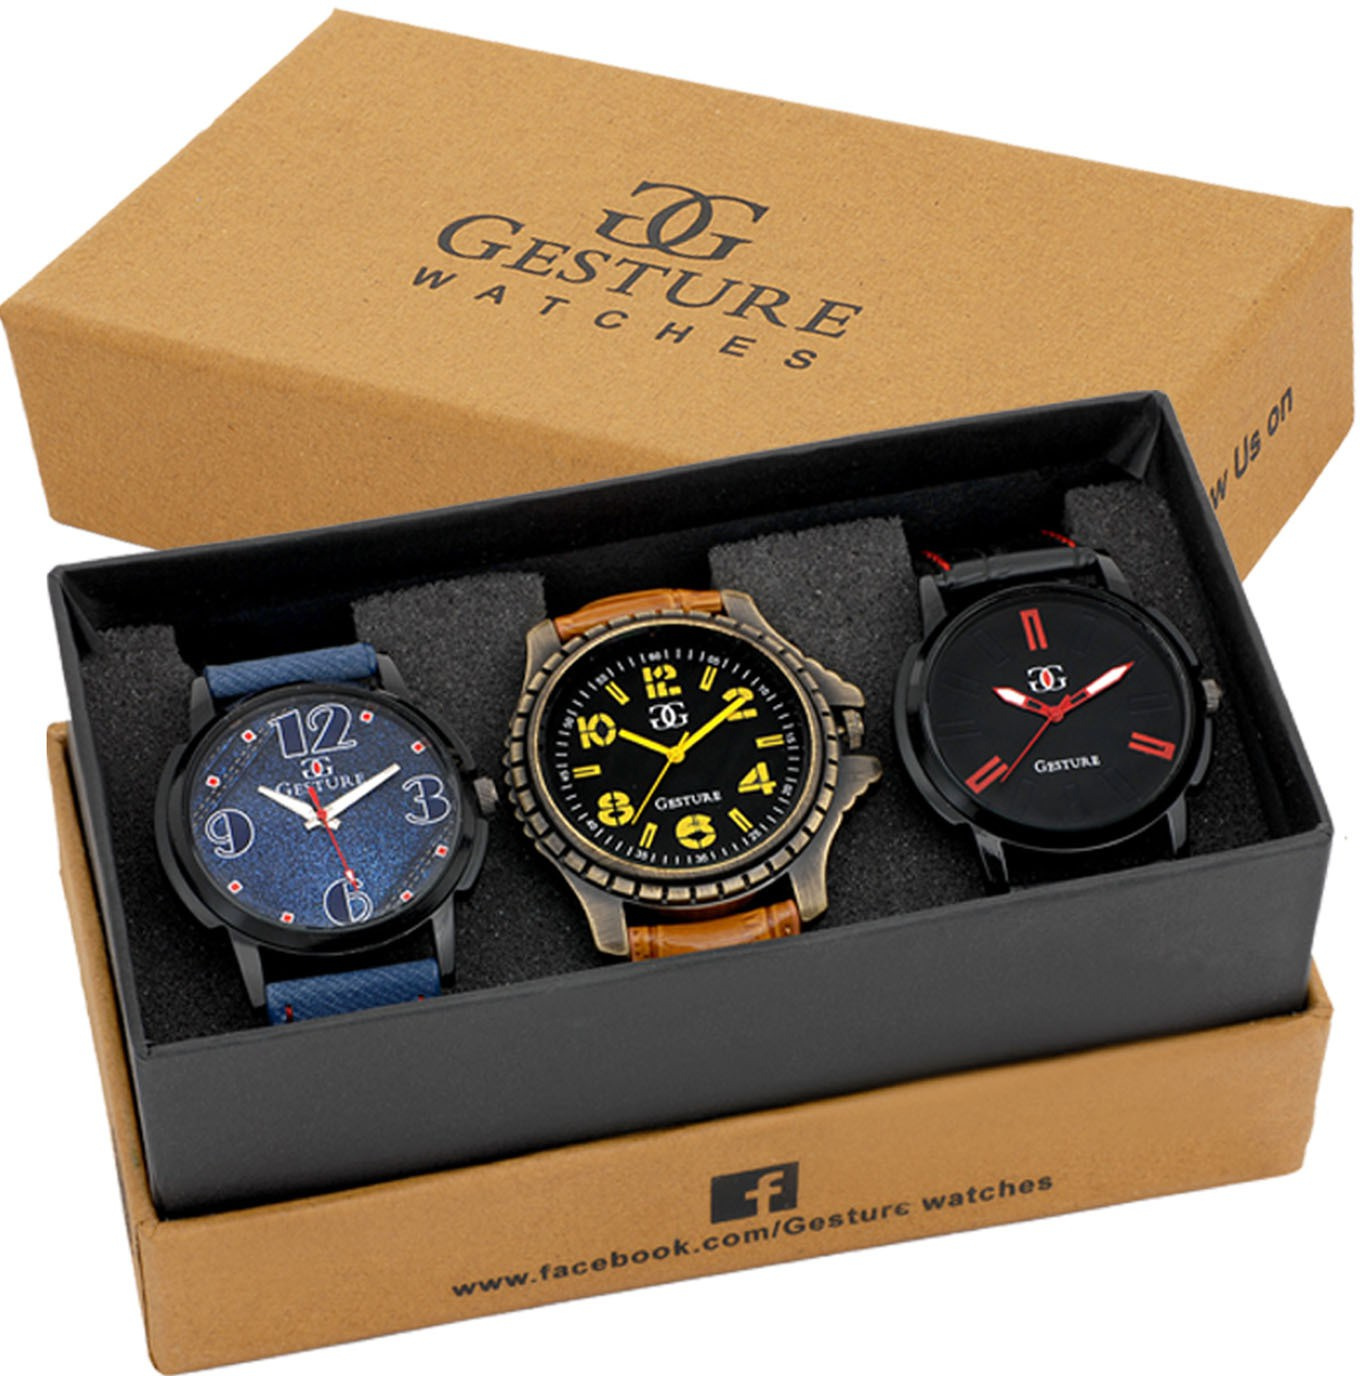 Deals - Delhi - Minimum 60% Off <br> Analog Watches<br> Category - watches<br> Business - Flipkart.com